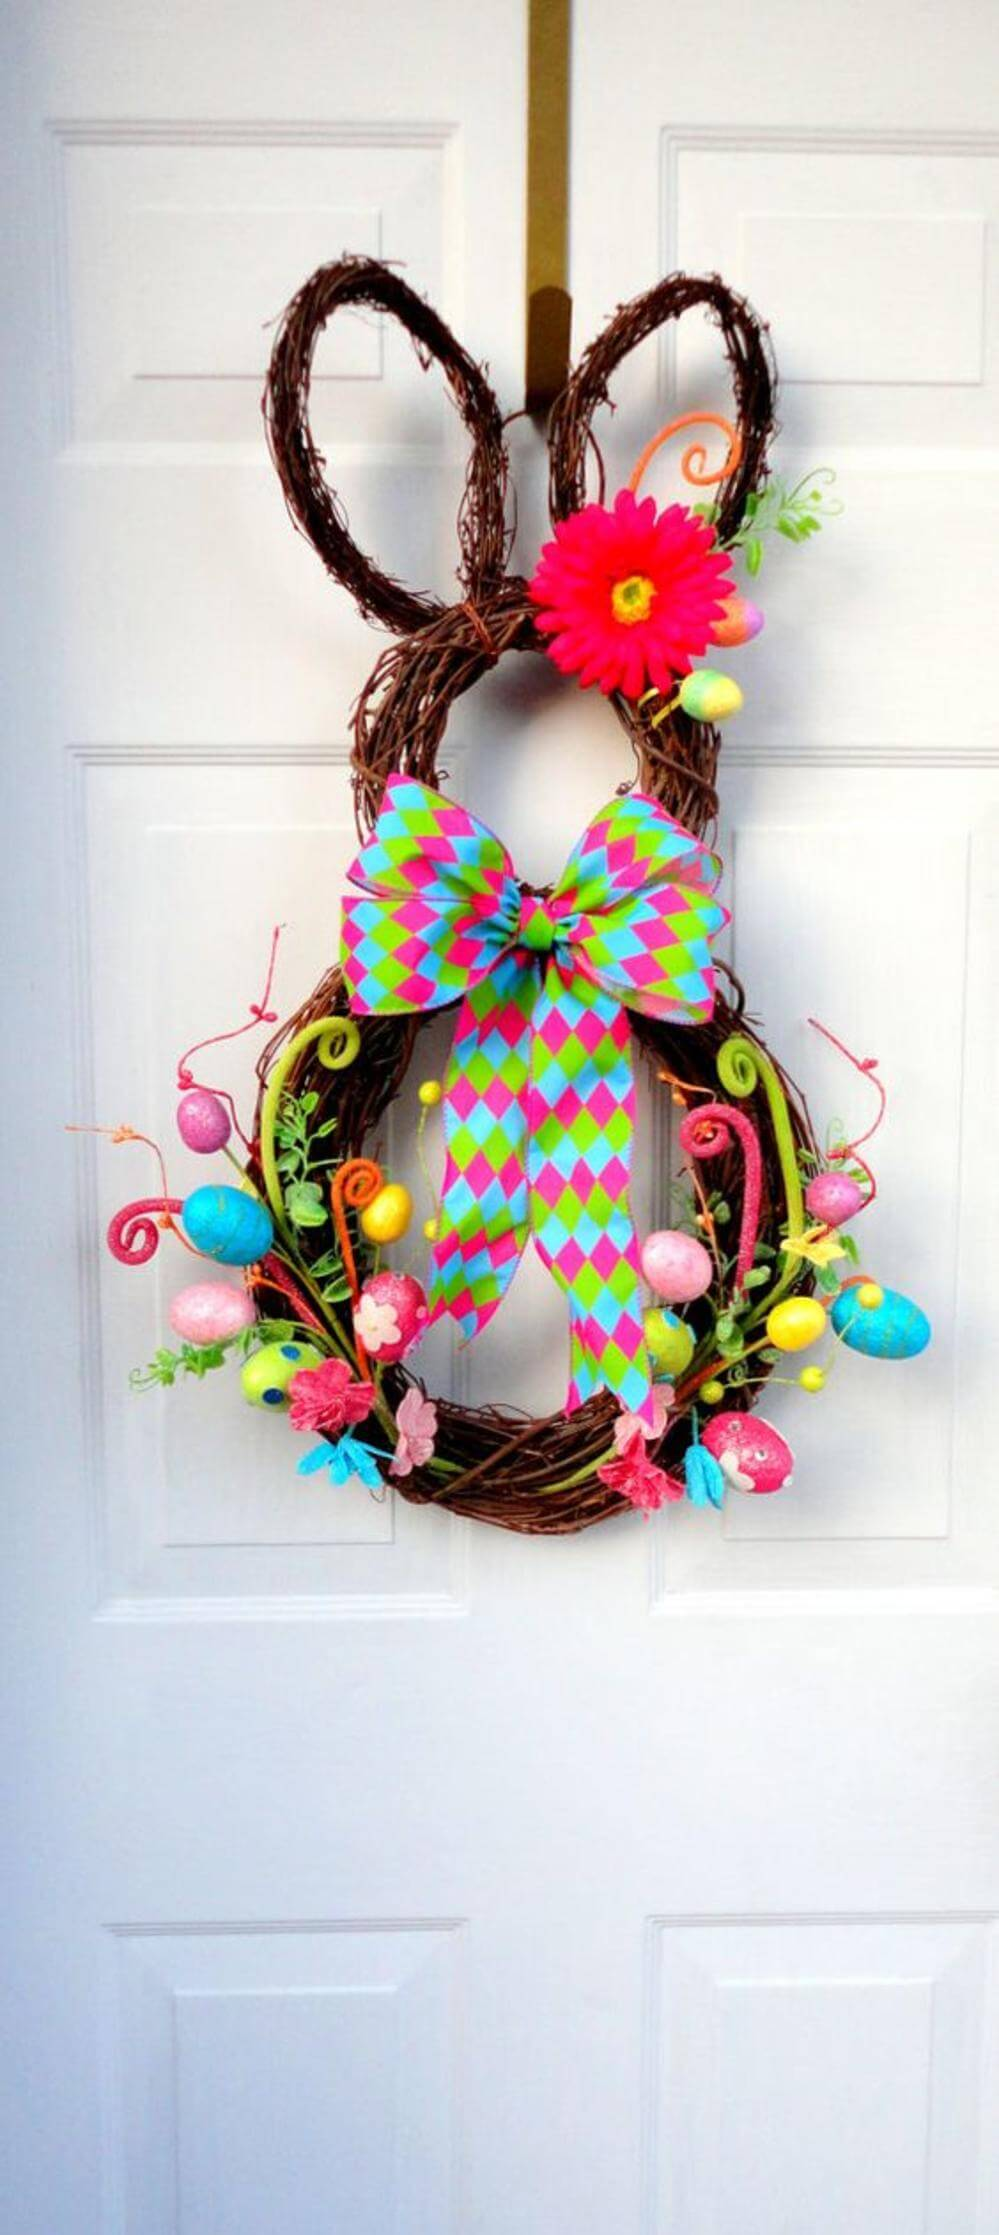 Diy easter decorations 17 ideas how to make a cute easter for Easter decorations ideas for the home